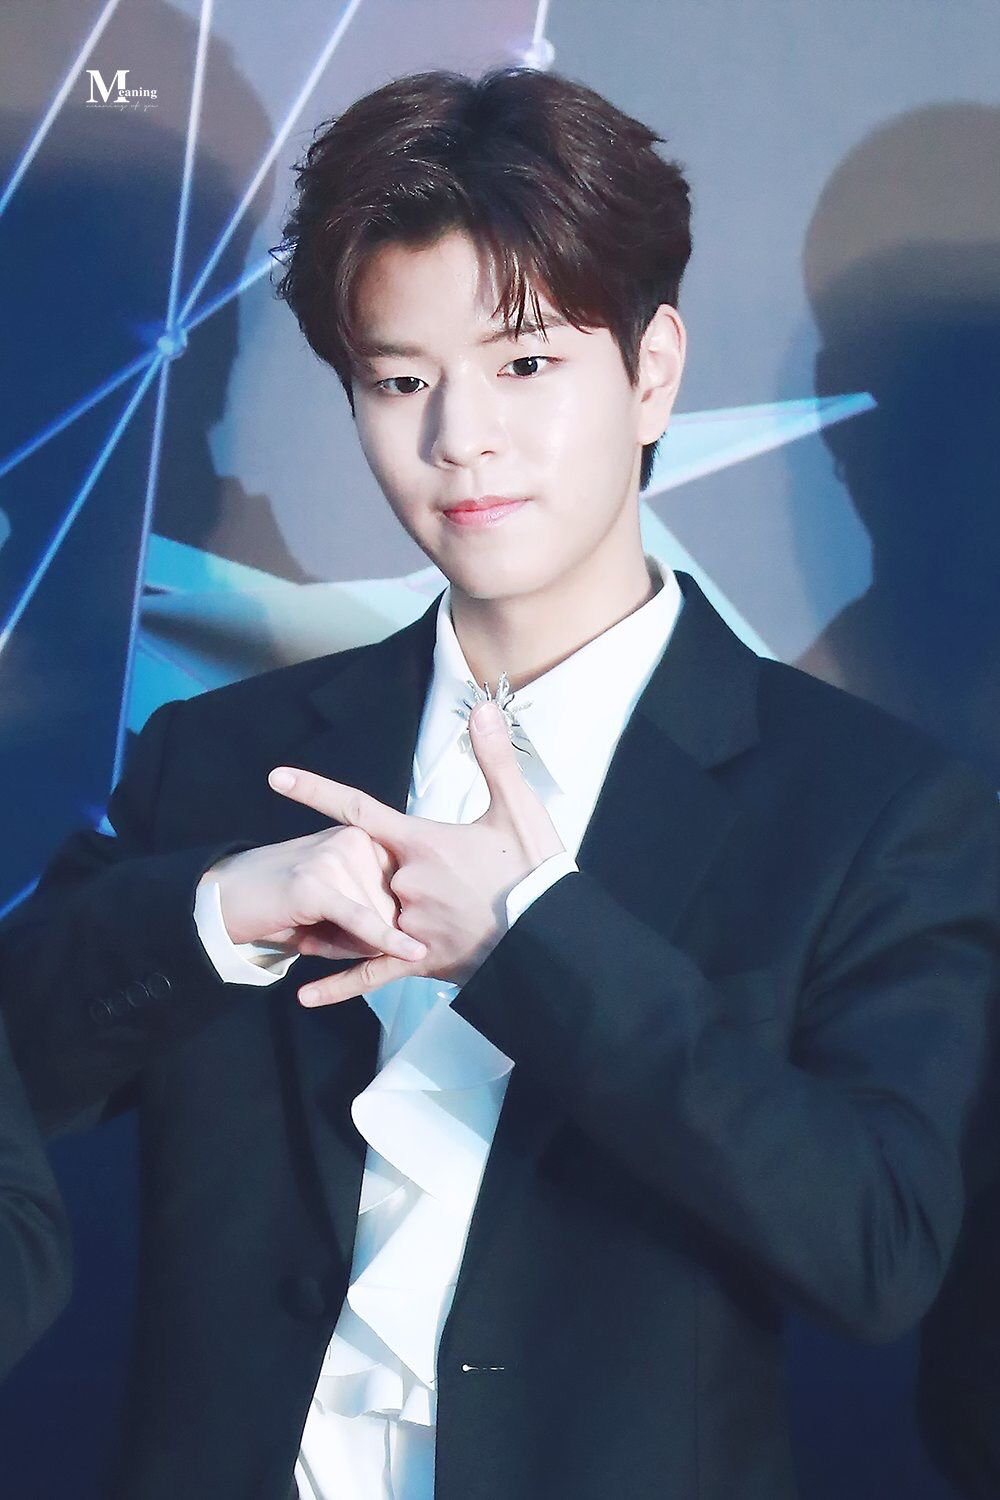 Pin By The Kids On Seongmin Stray Kids Seungmin Kids Pictures Kids